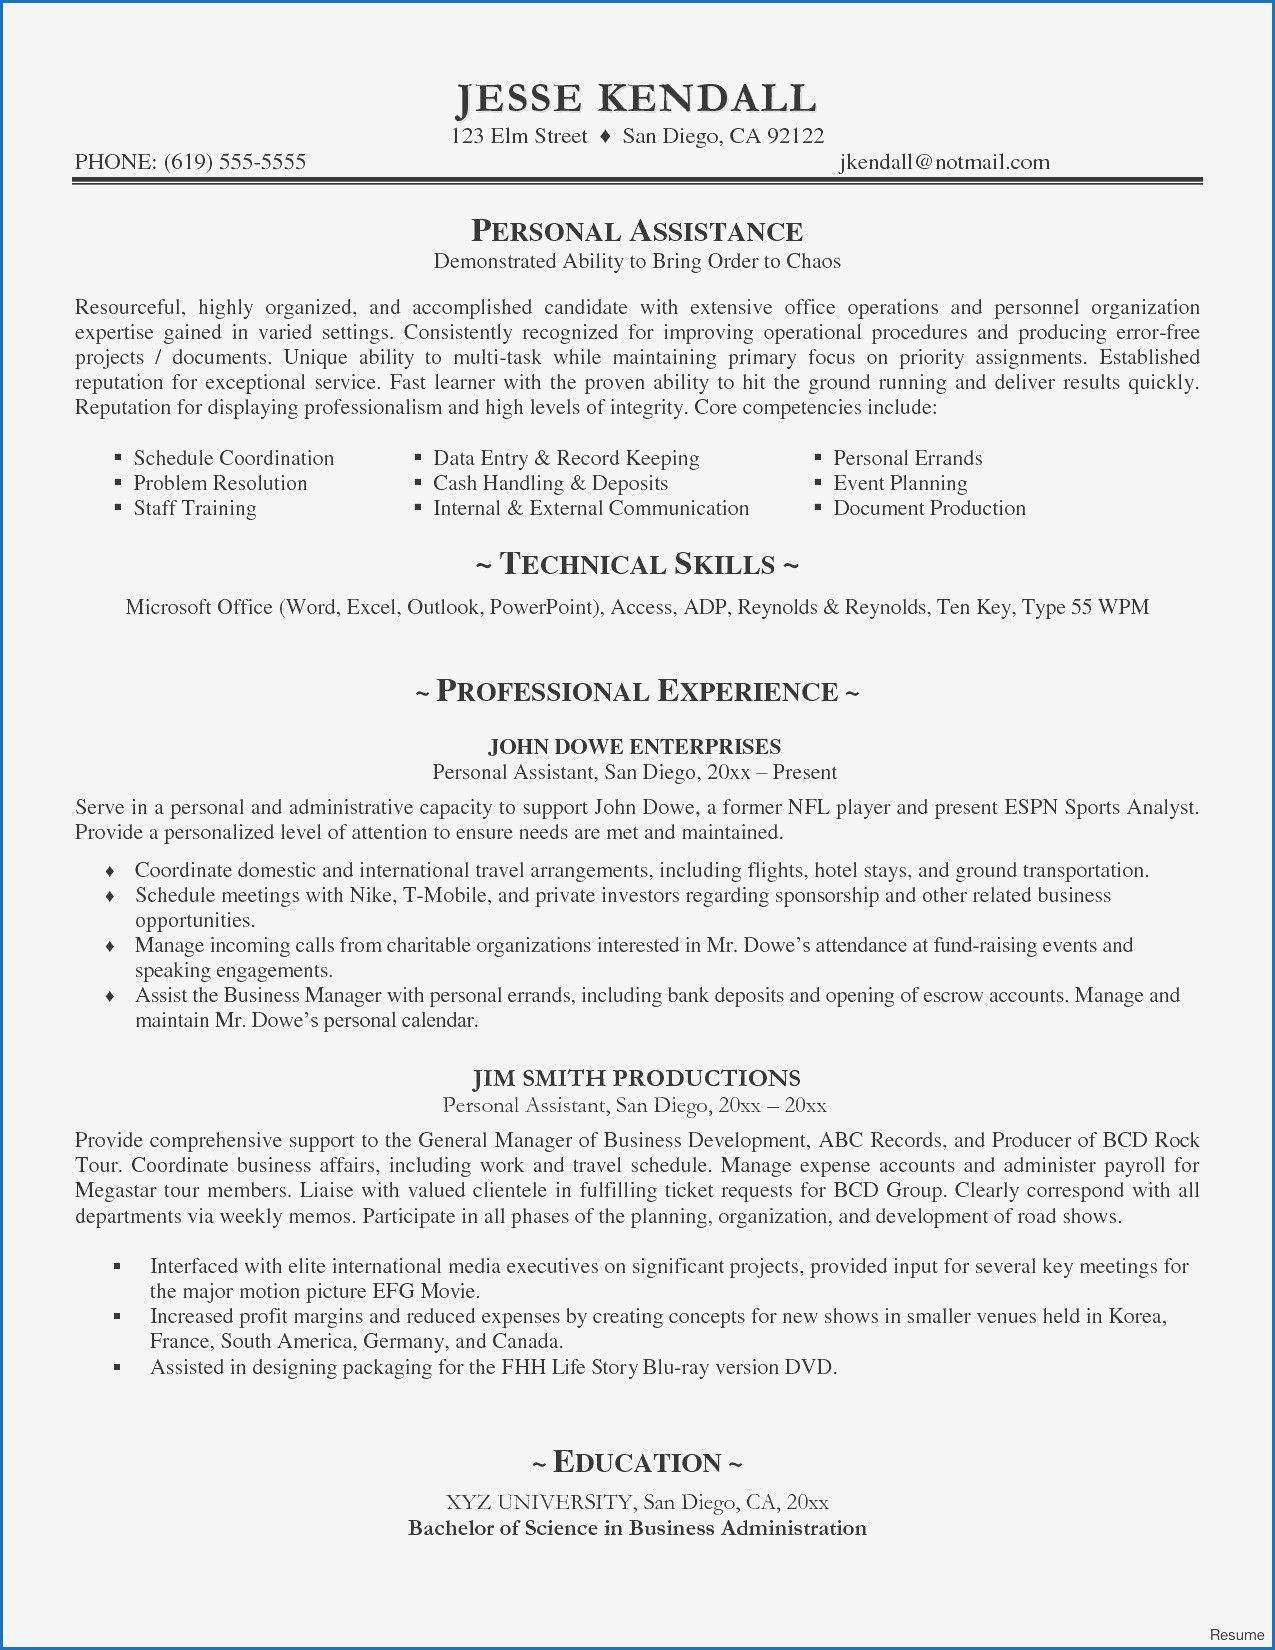 14 Resume Cover Letter Examples Event Planning Check More At Https Www Ortelle Org Resume Cover Letter Examples Event Planning